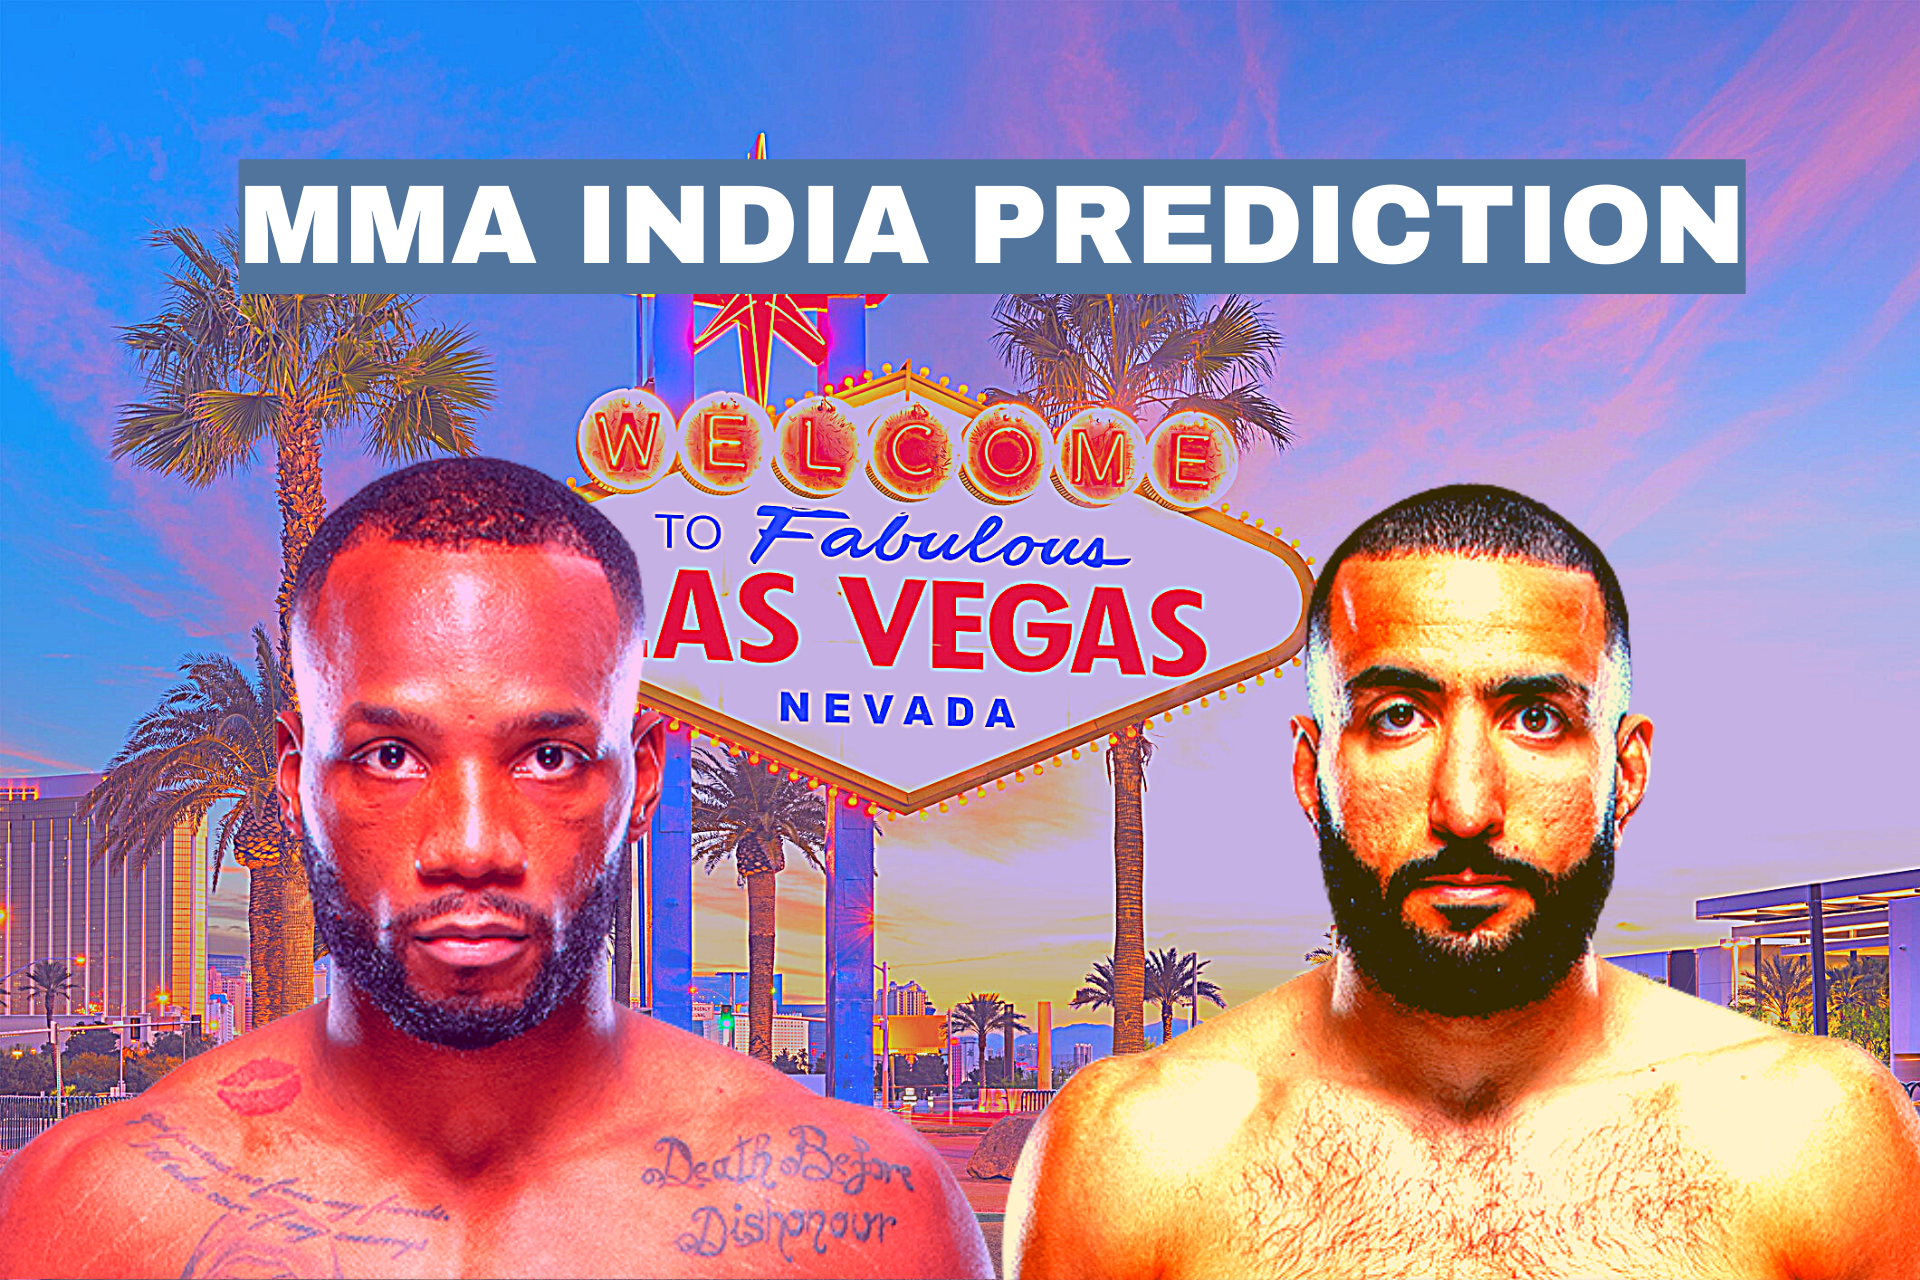 UFC Fight Night: Edwards vs Muhammad betting odds and prediction - Edwards